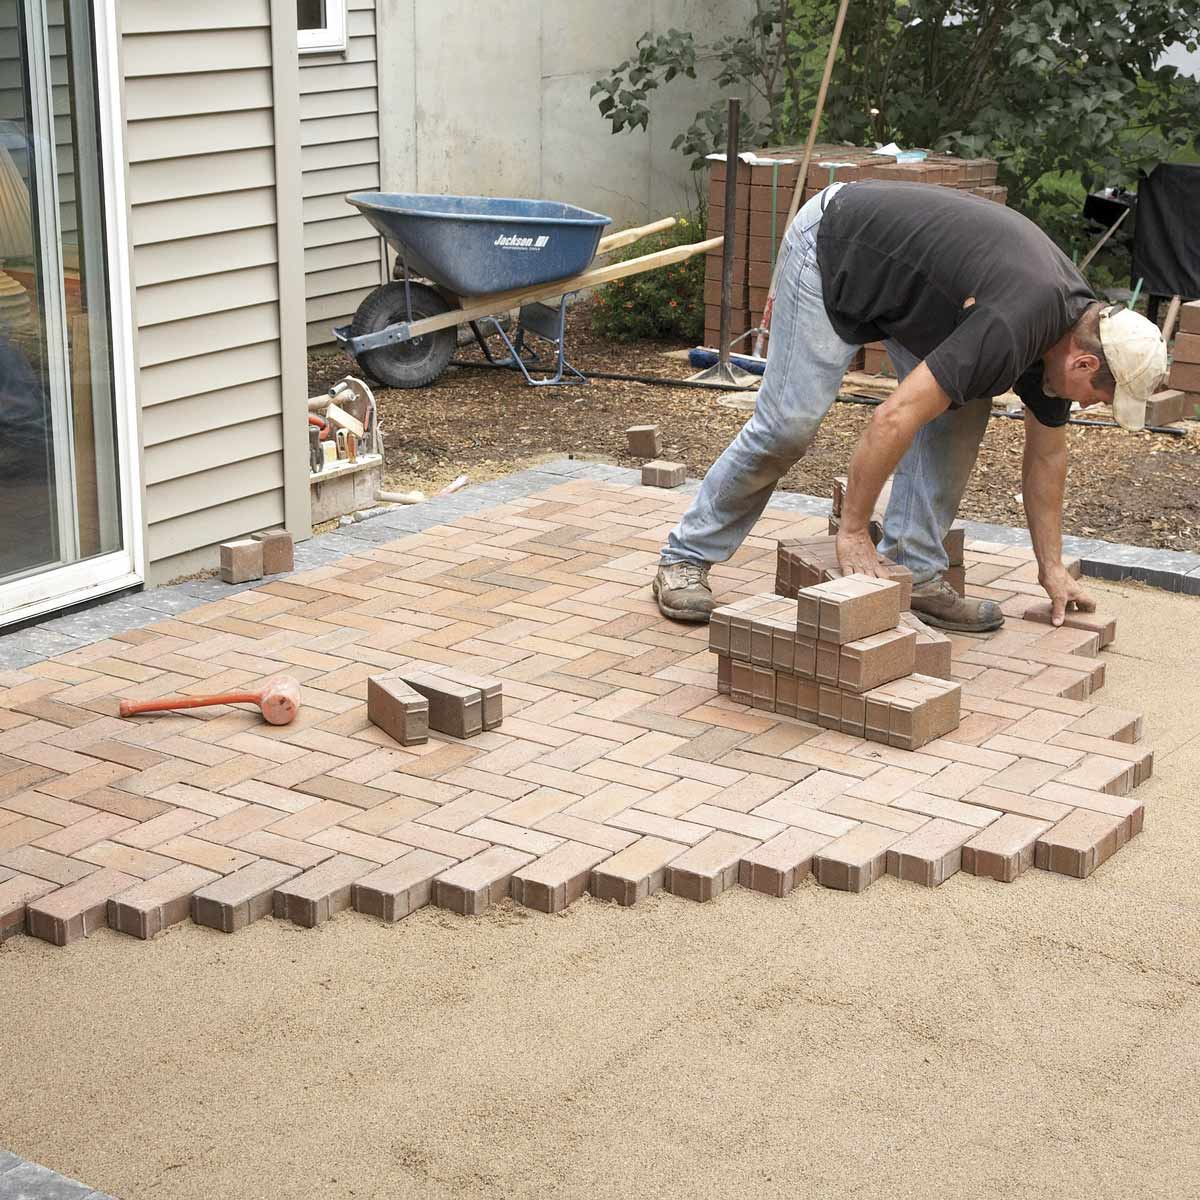 Pavers-Carrollton TX Landscape Designs & Outdoor Living Areas-We offer Landscape Design, Outdoor Patios & Pergolas, Outdoor Living Spaces, Stonescapes, Residential & Commercial Landscaping, Irrigation Installation & Repairs, Drainage Systems, Landscape Lighting, Outdoor Living Spaces, Tree Service, Lawn Service, and more.